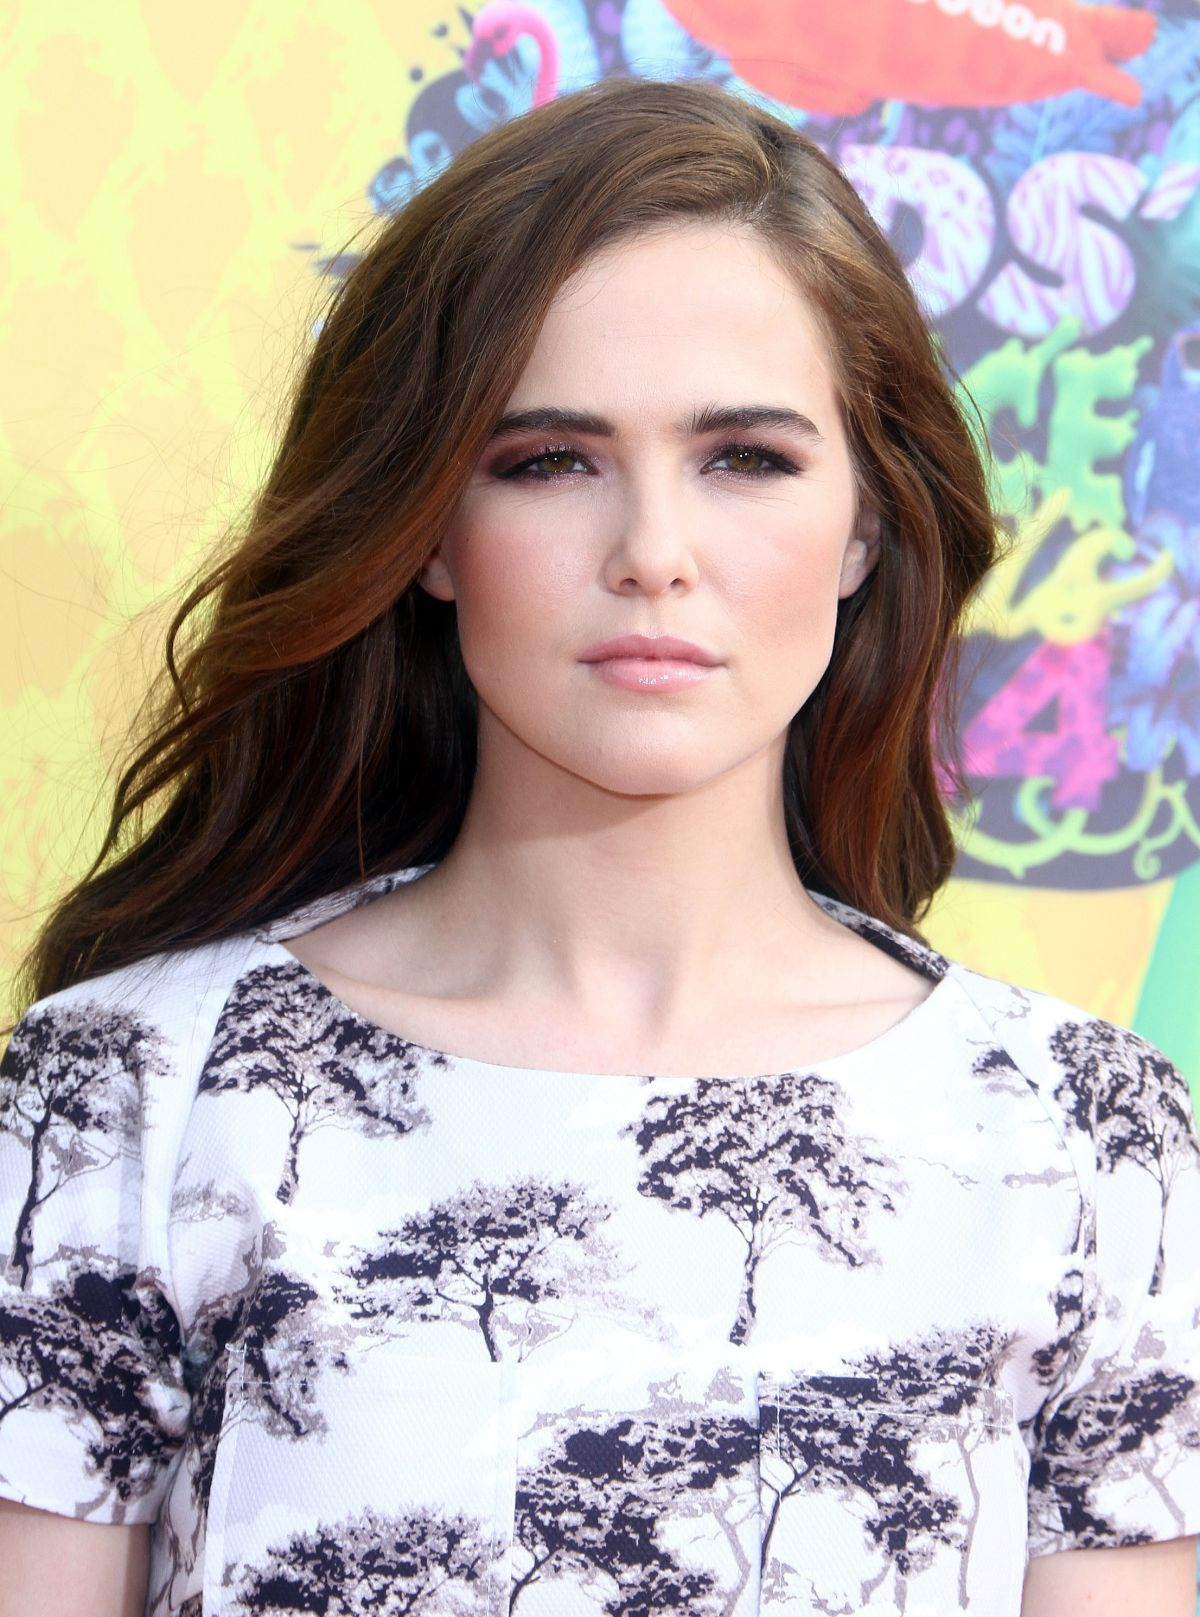 ZOEY DEUTCH at 2014 Nickelodeon's Kids' Choice Awards in Los Angeles